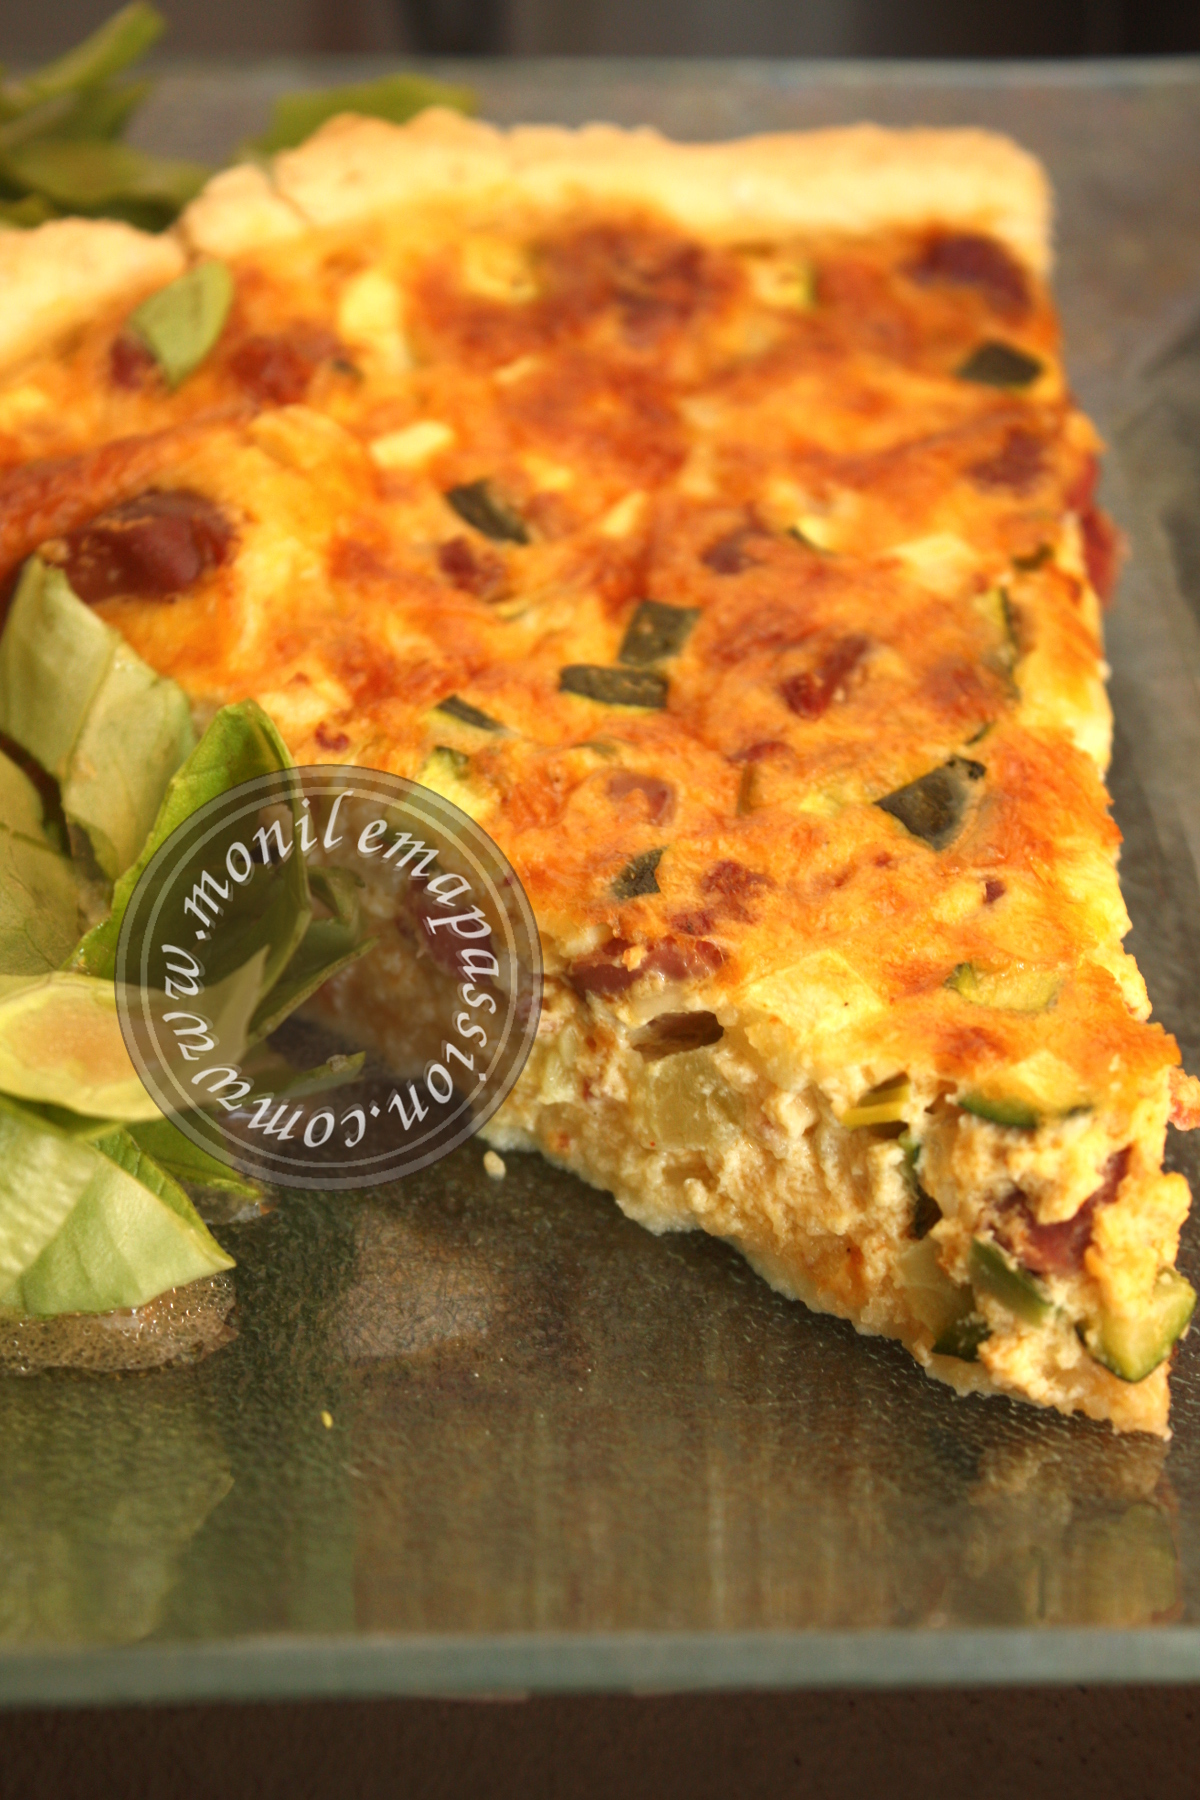 Quiche courgettes et gésiers de volaille - Zucchini and Chicken Gizzards Quiche